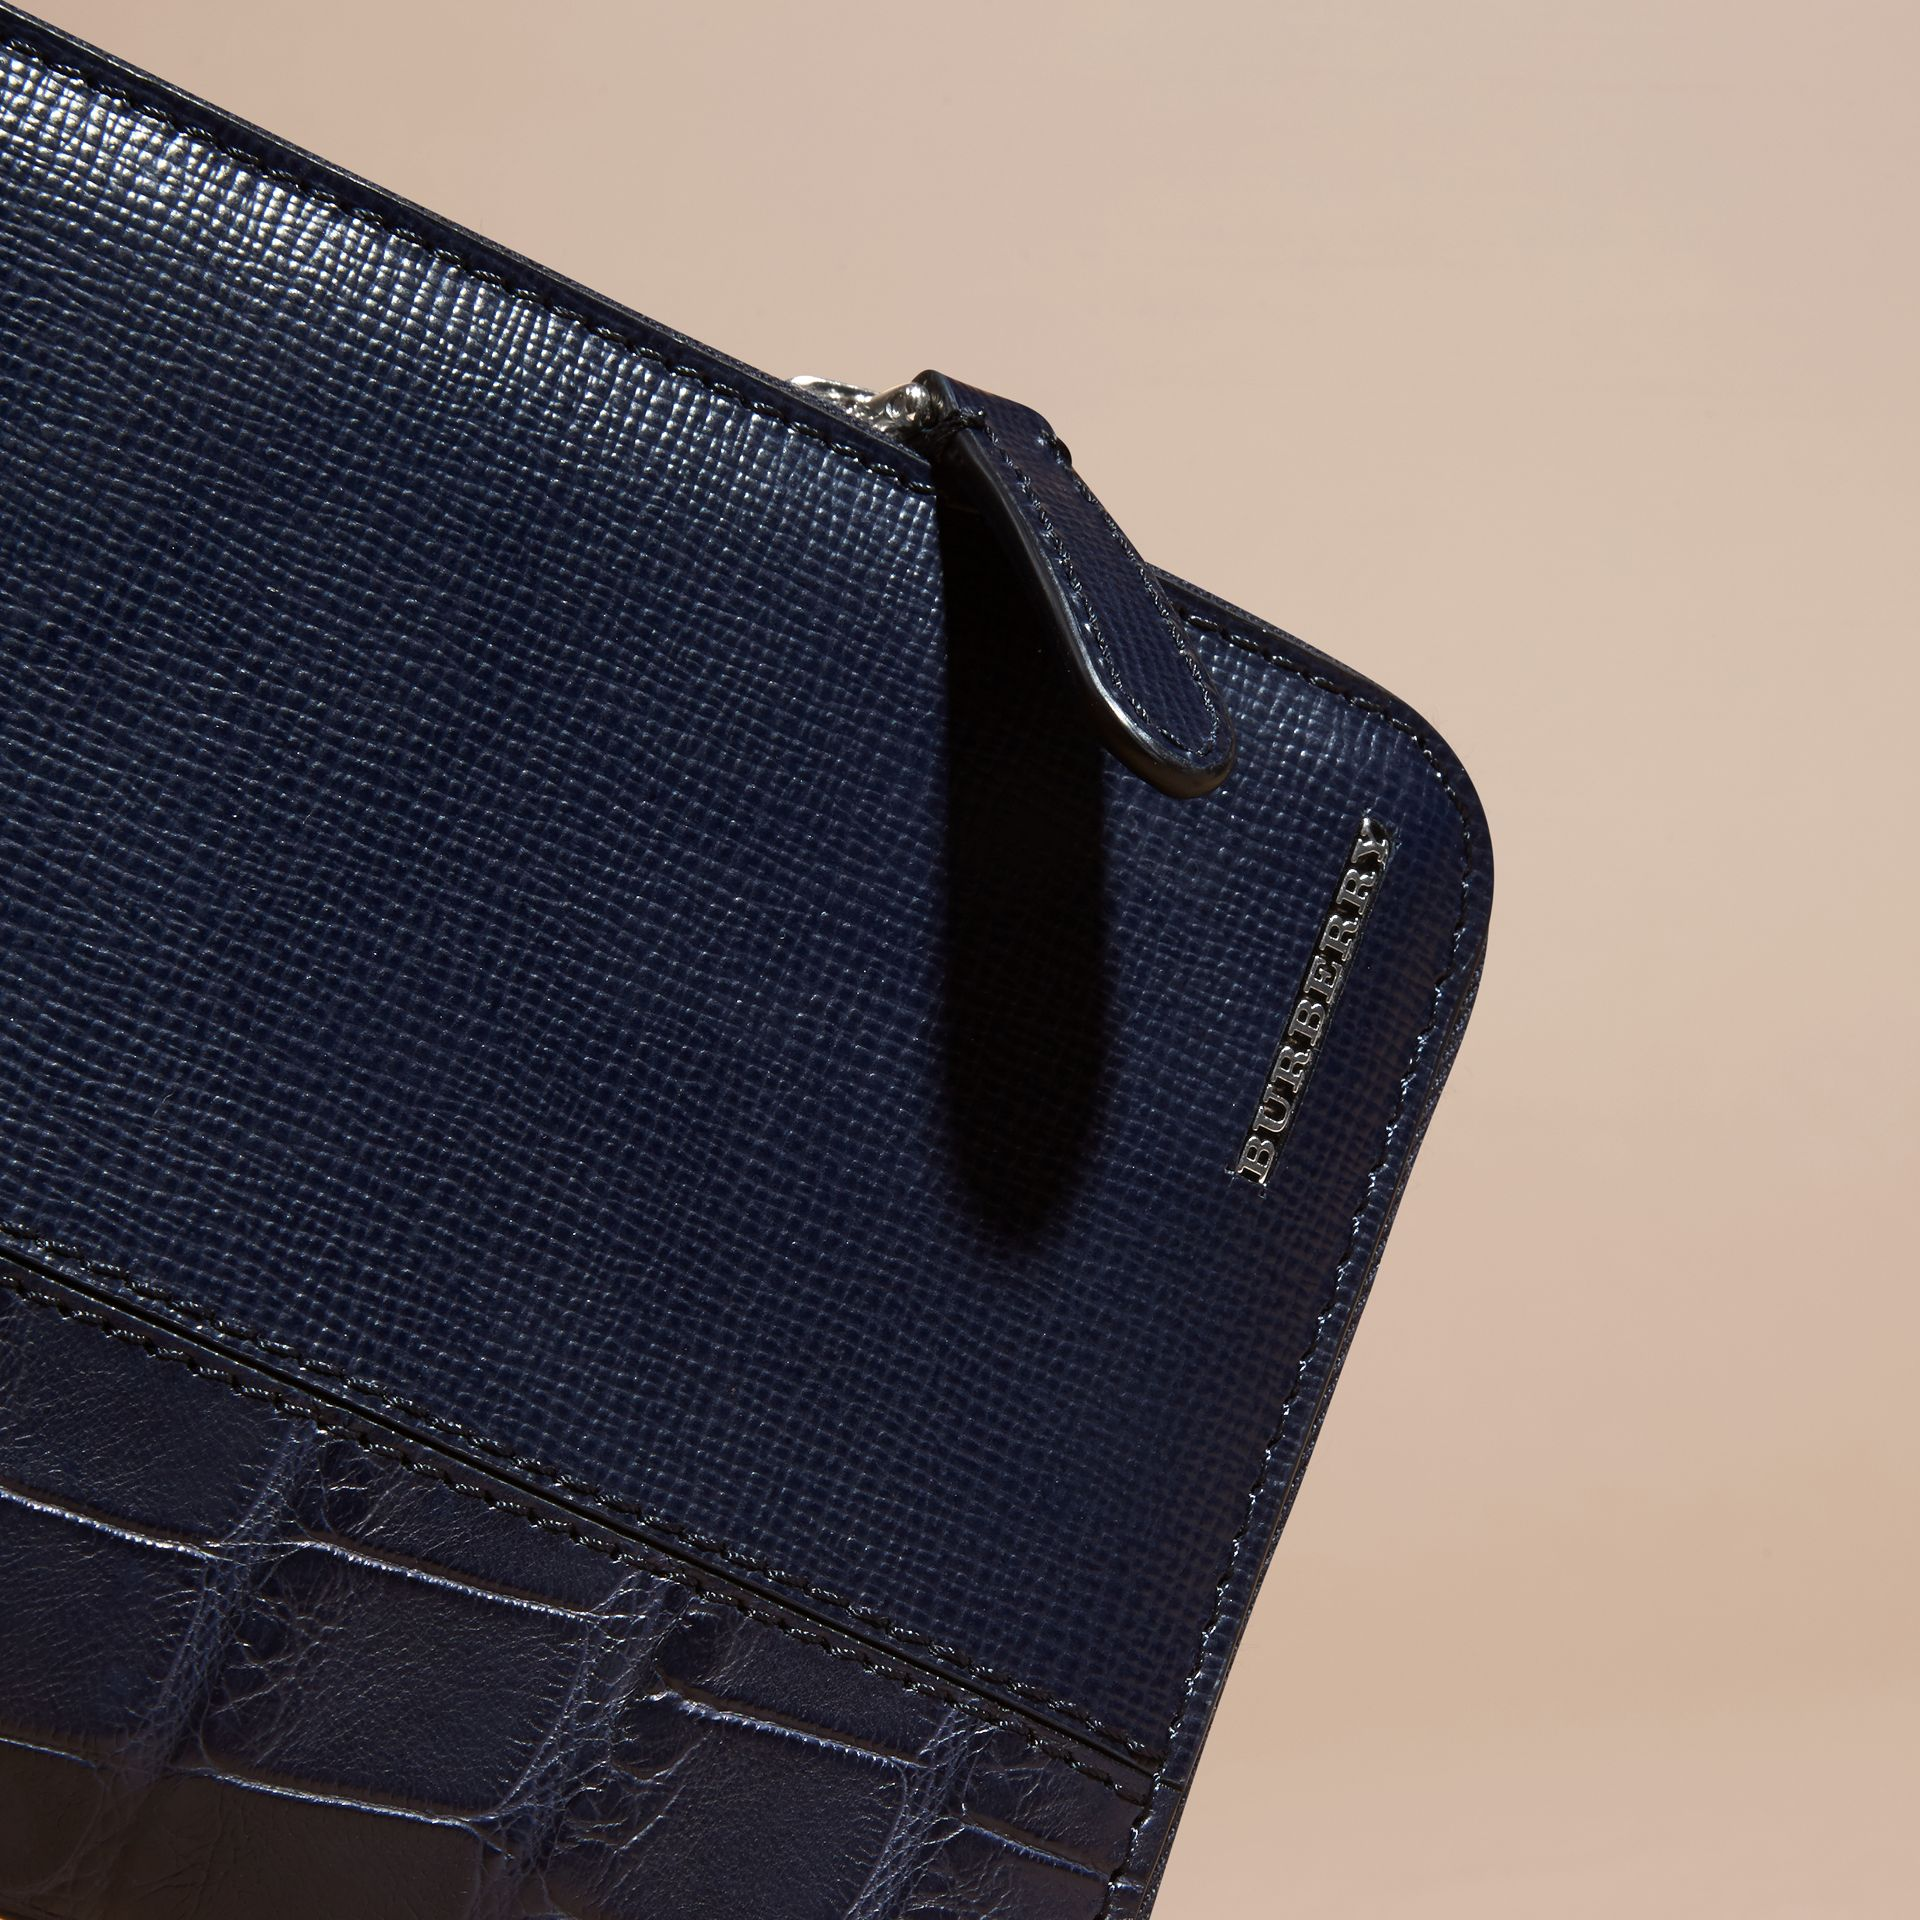 London Leather and Alligator Ziparound Wallet in Dark Navy - Men | Burberry United Kingdom - gallery image 2